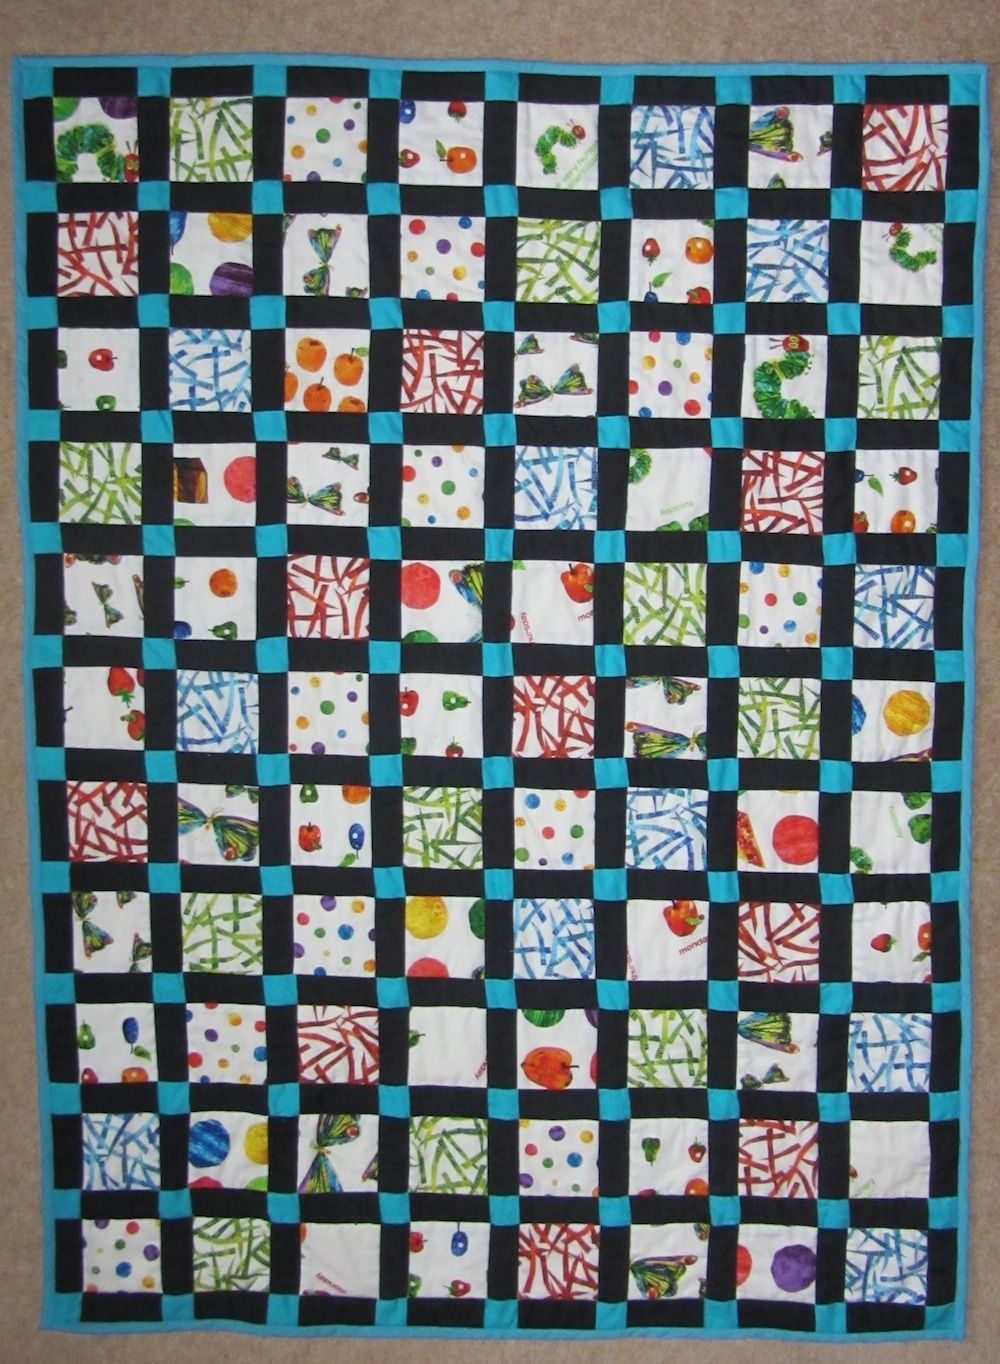 Hungary Caterpillar Quilt 3.JPG